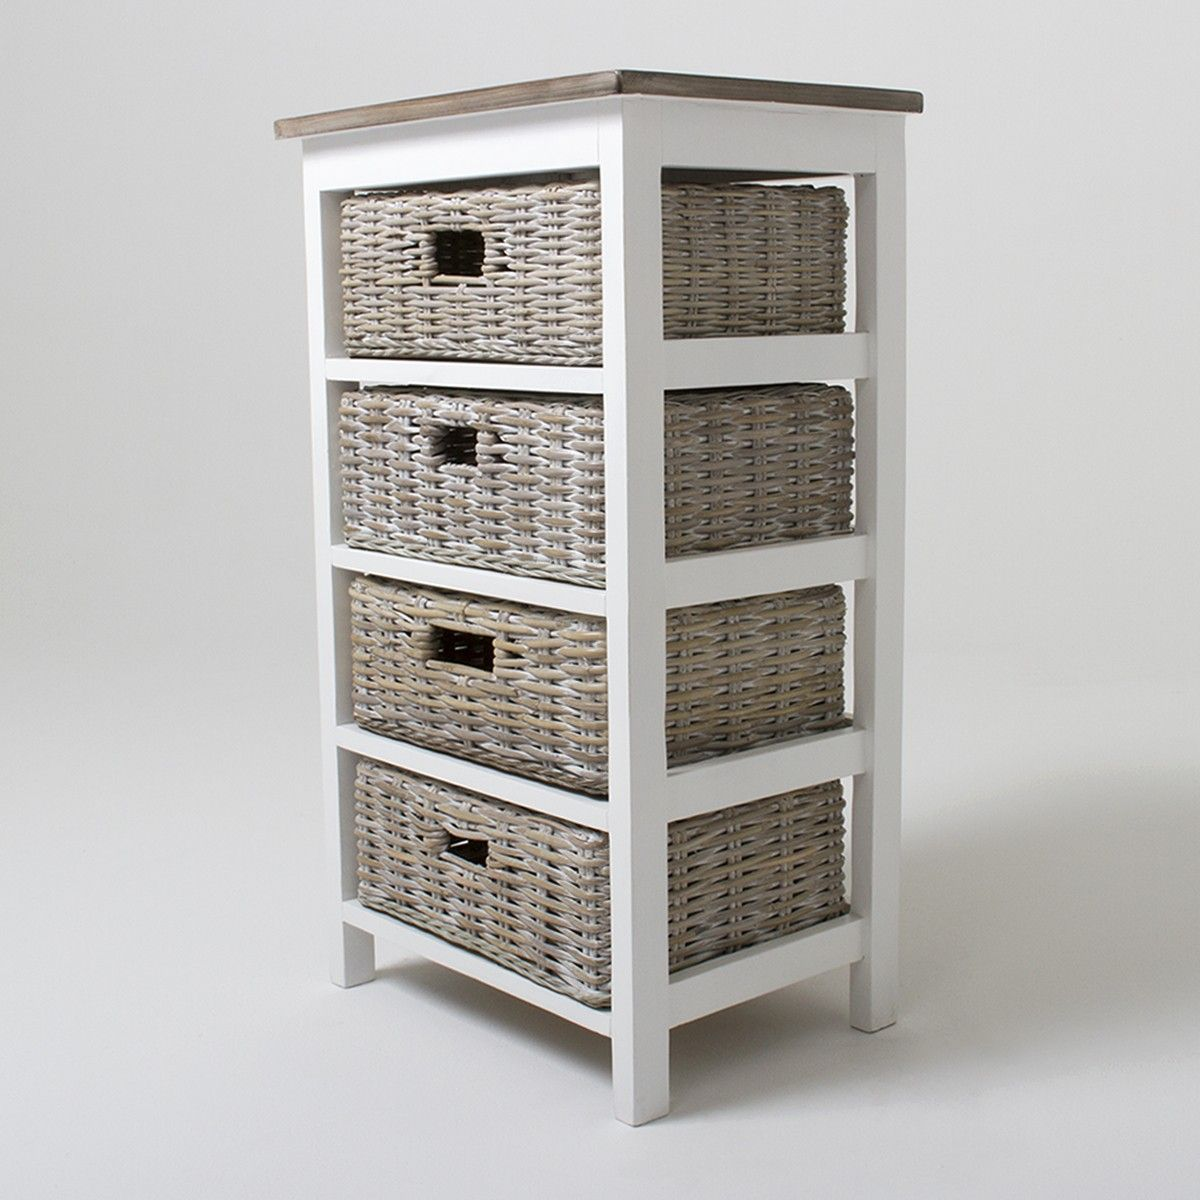 Storage Cabinet With Wicker Baskets Bay Four Basket Unit Units Cabinets Shelving